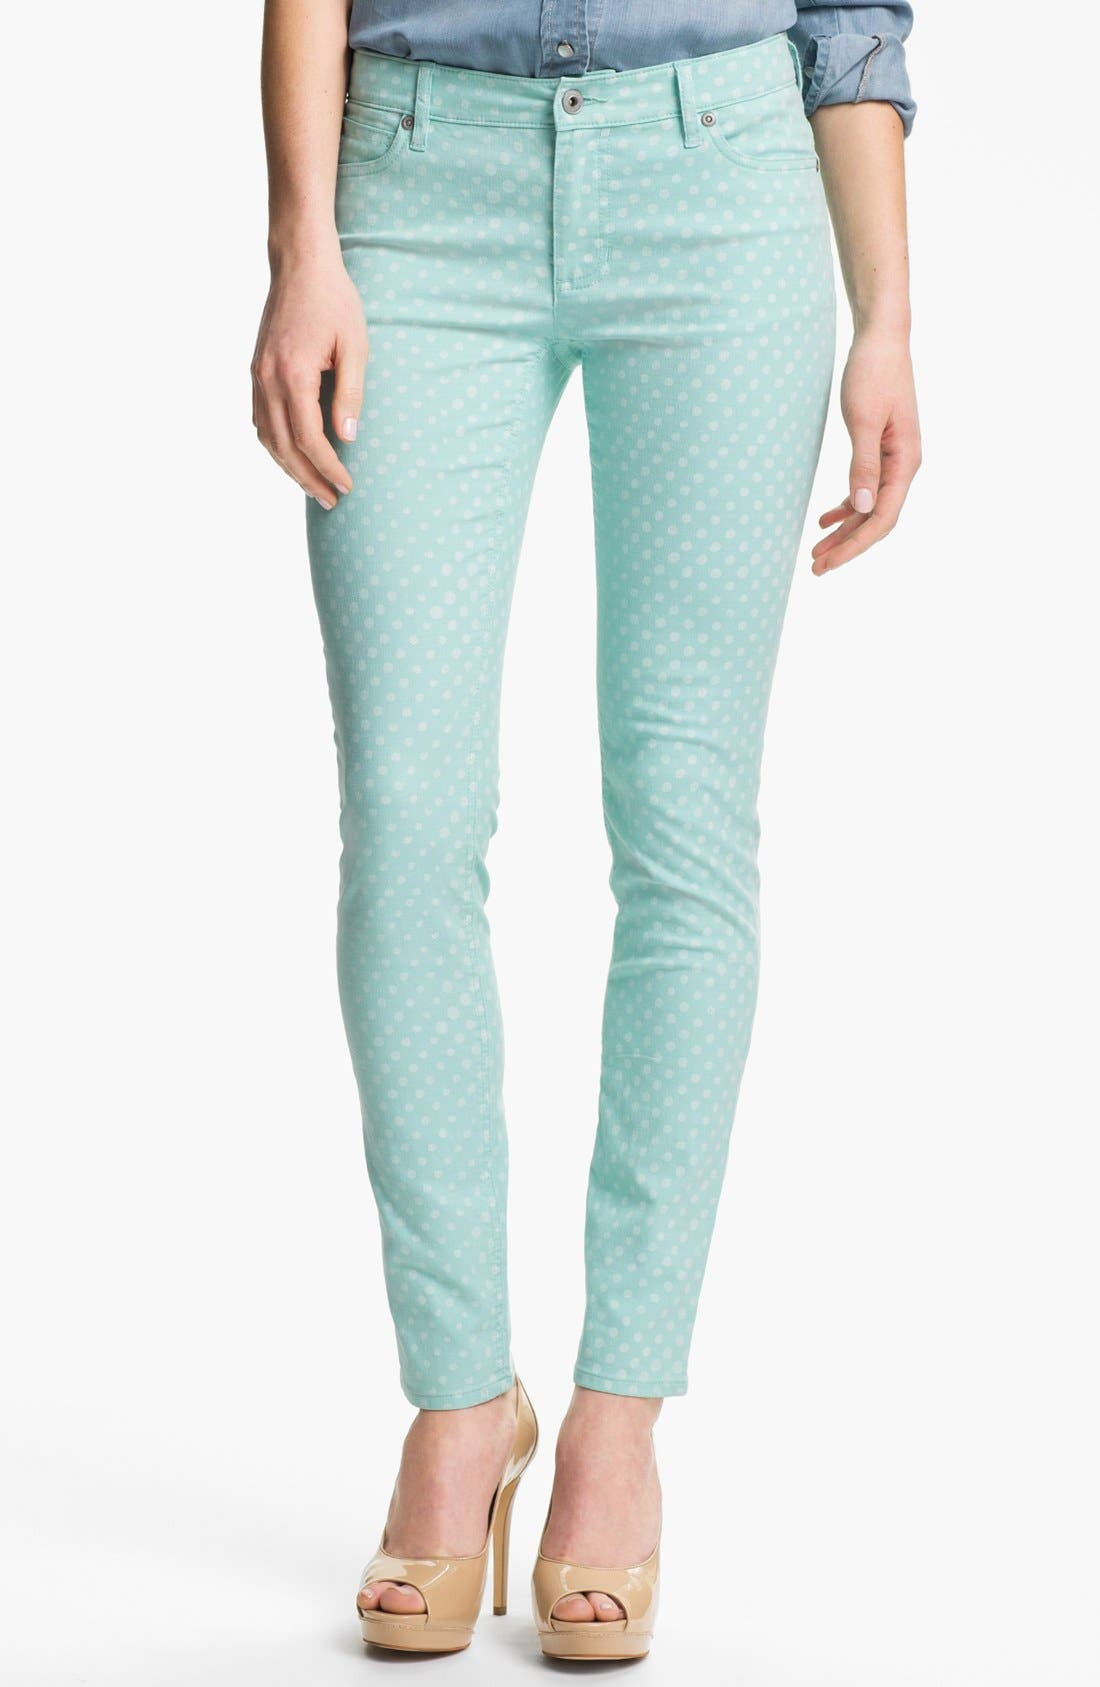 Alternate Image 1 Selected - Two by Vince Camuto Polka Dot Straight Leg Jeans (Petite)